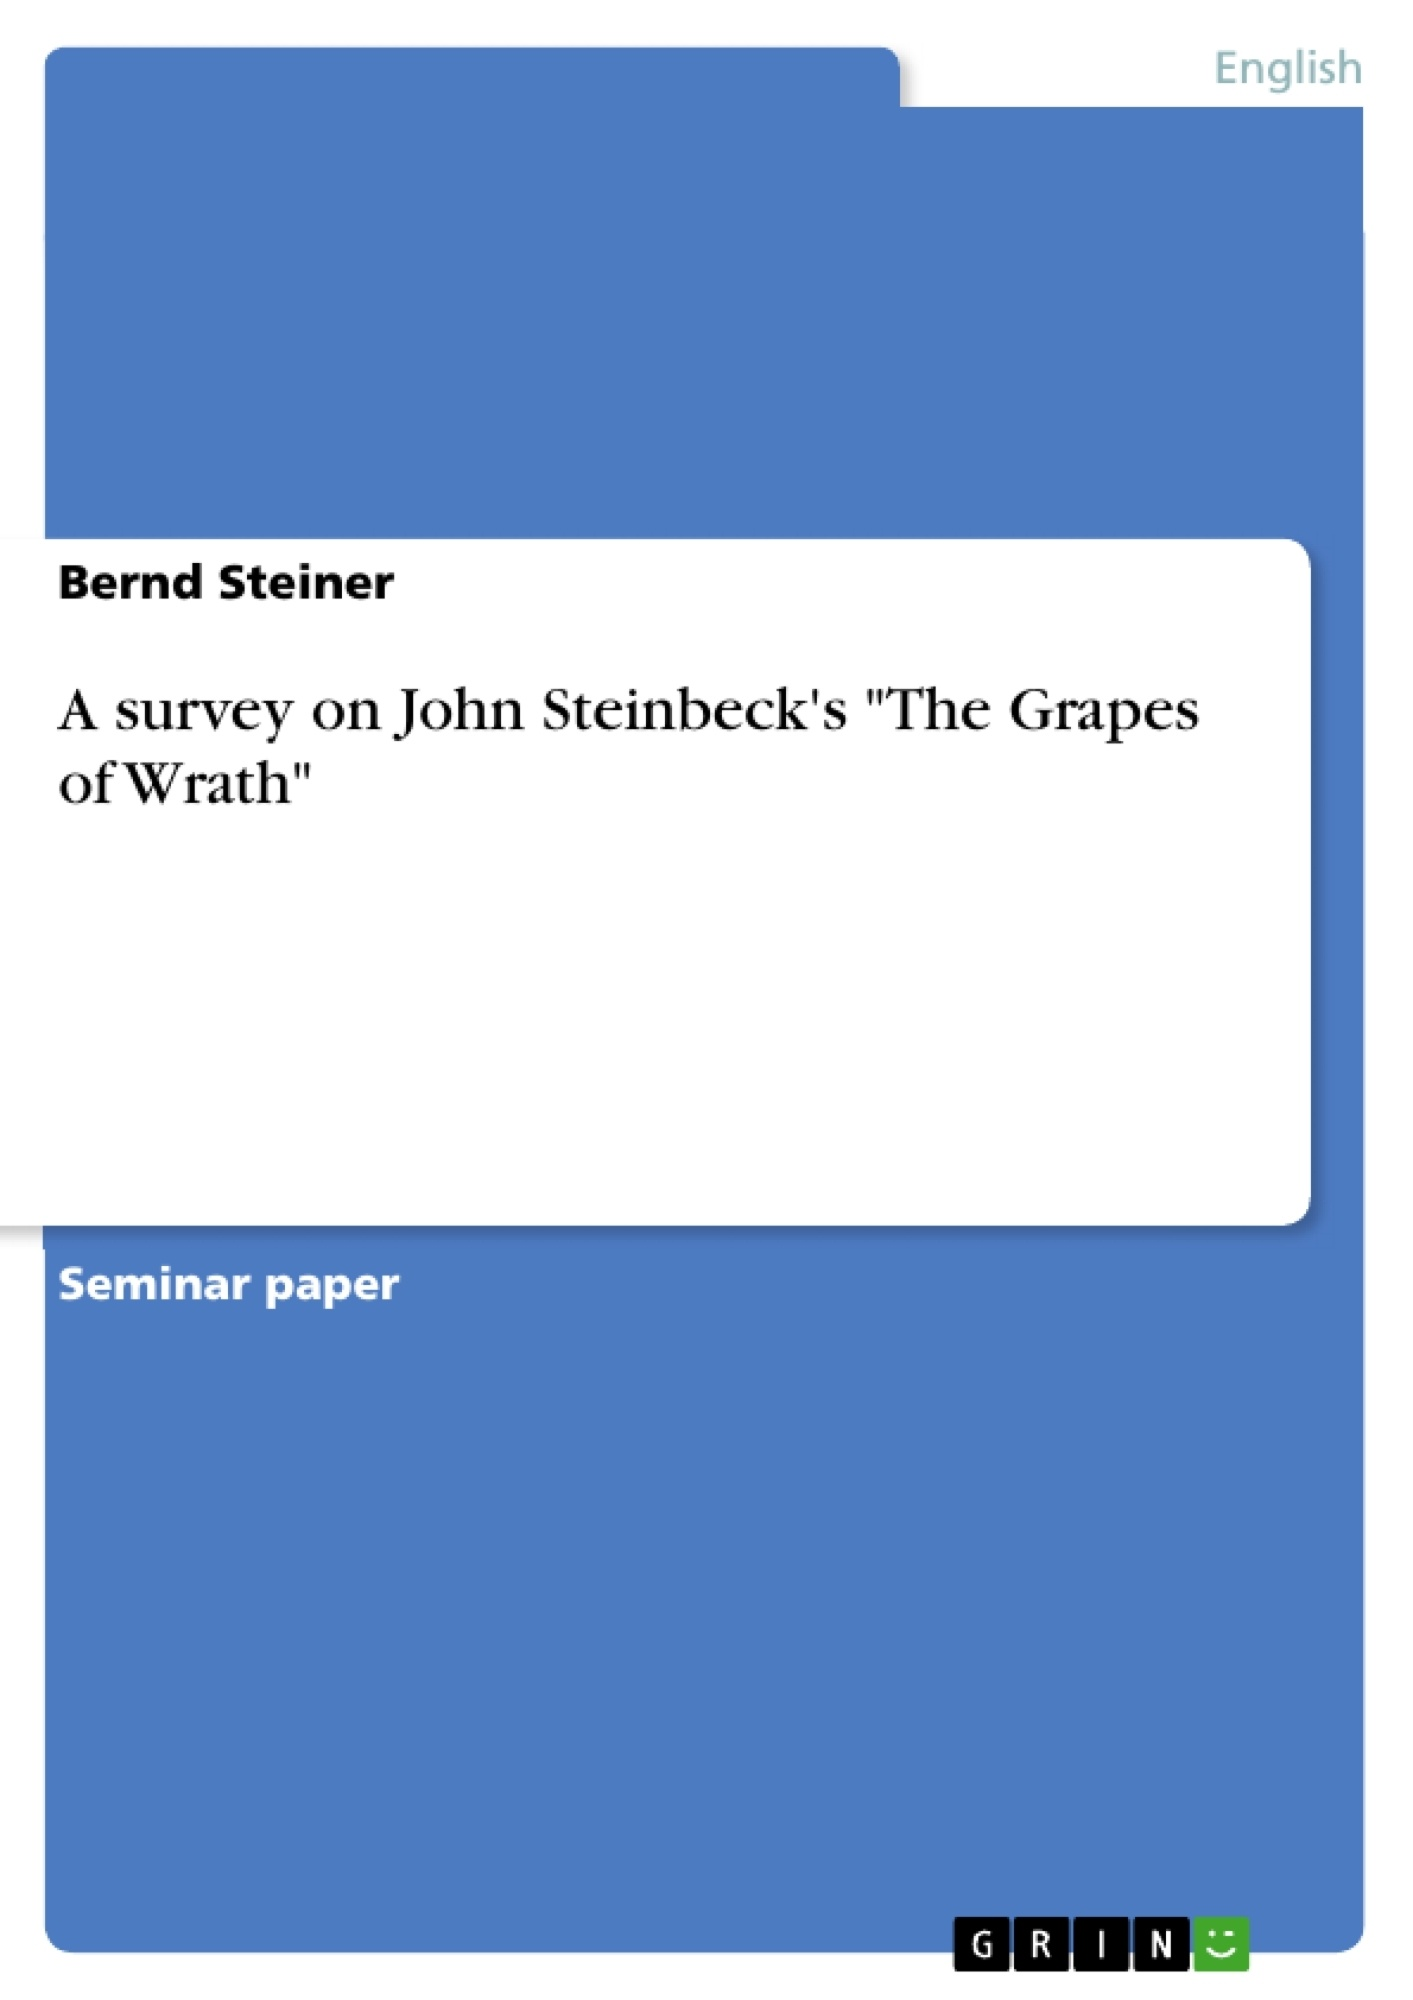 literary essay on the grapes of wrath In the grapes of wrath, john steinbeck's use of diction builds the foundation of his overall theme the cruelties men impose on other men his use of repetition.